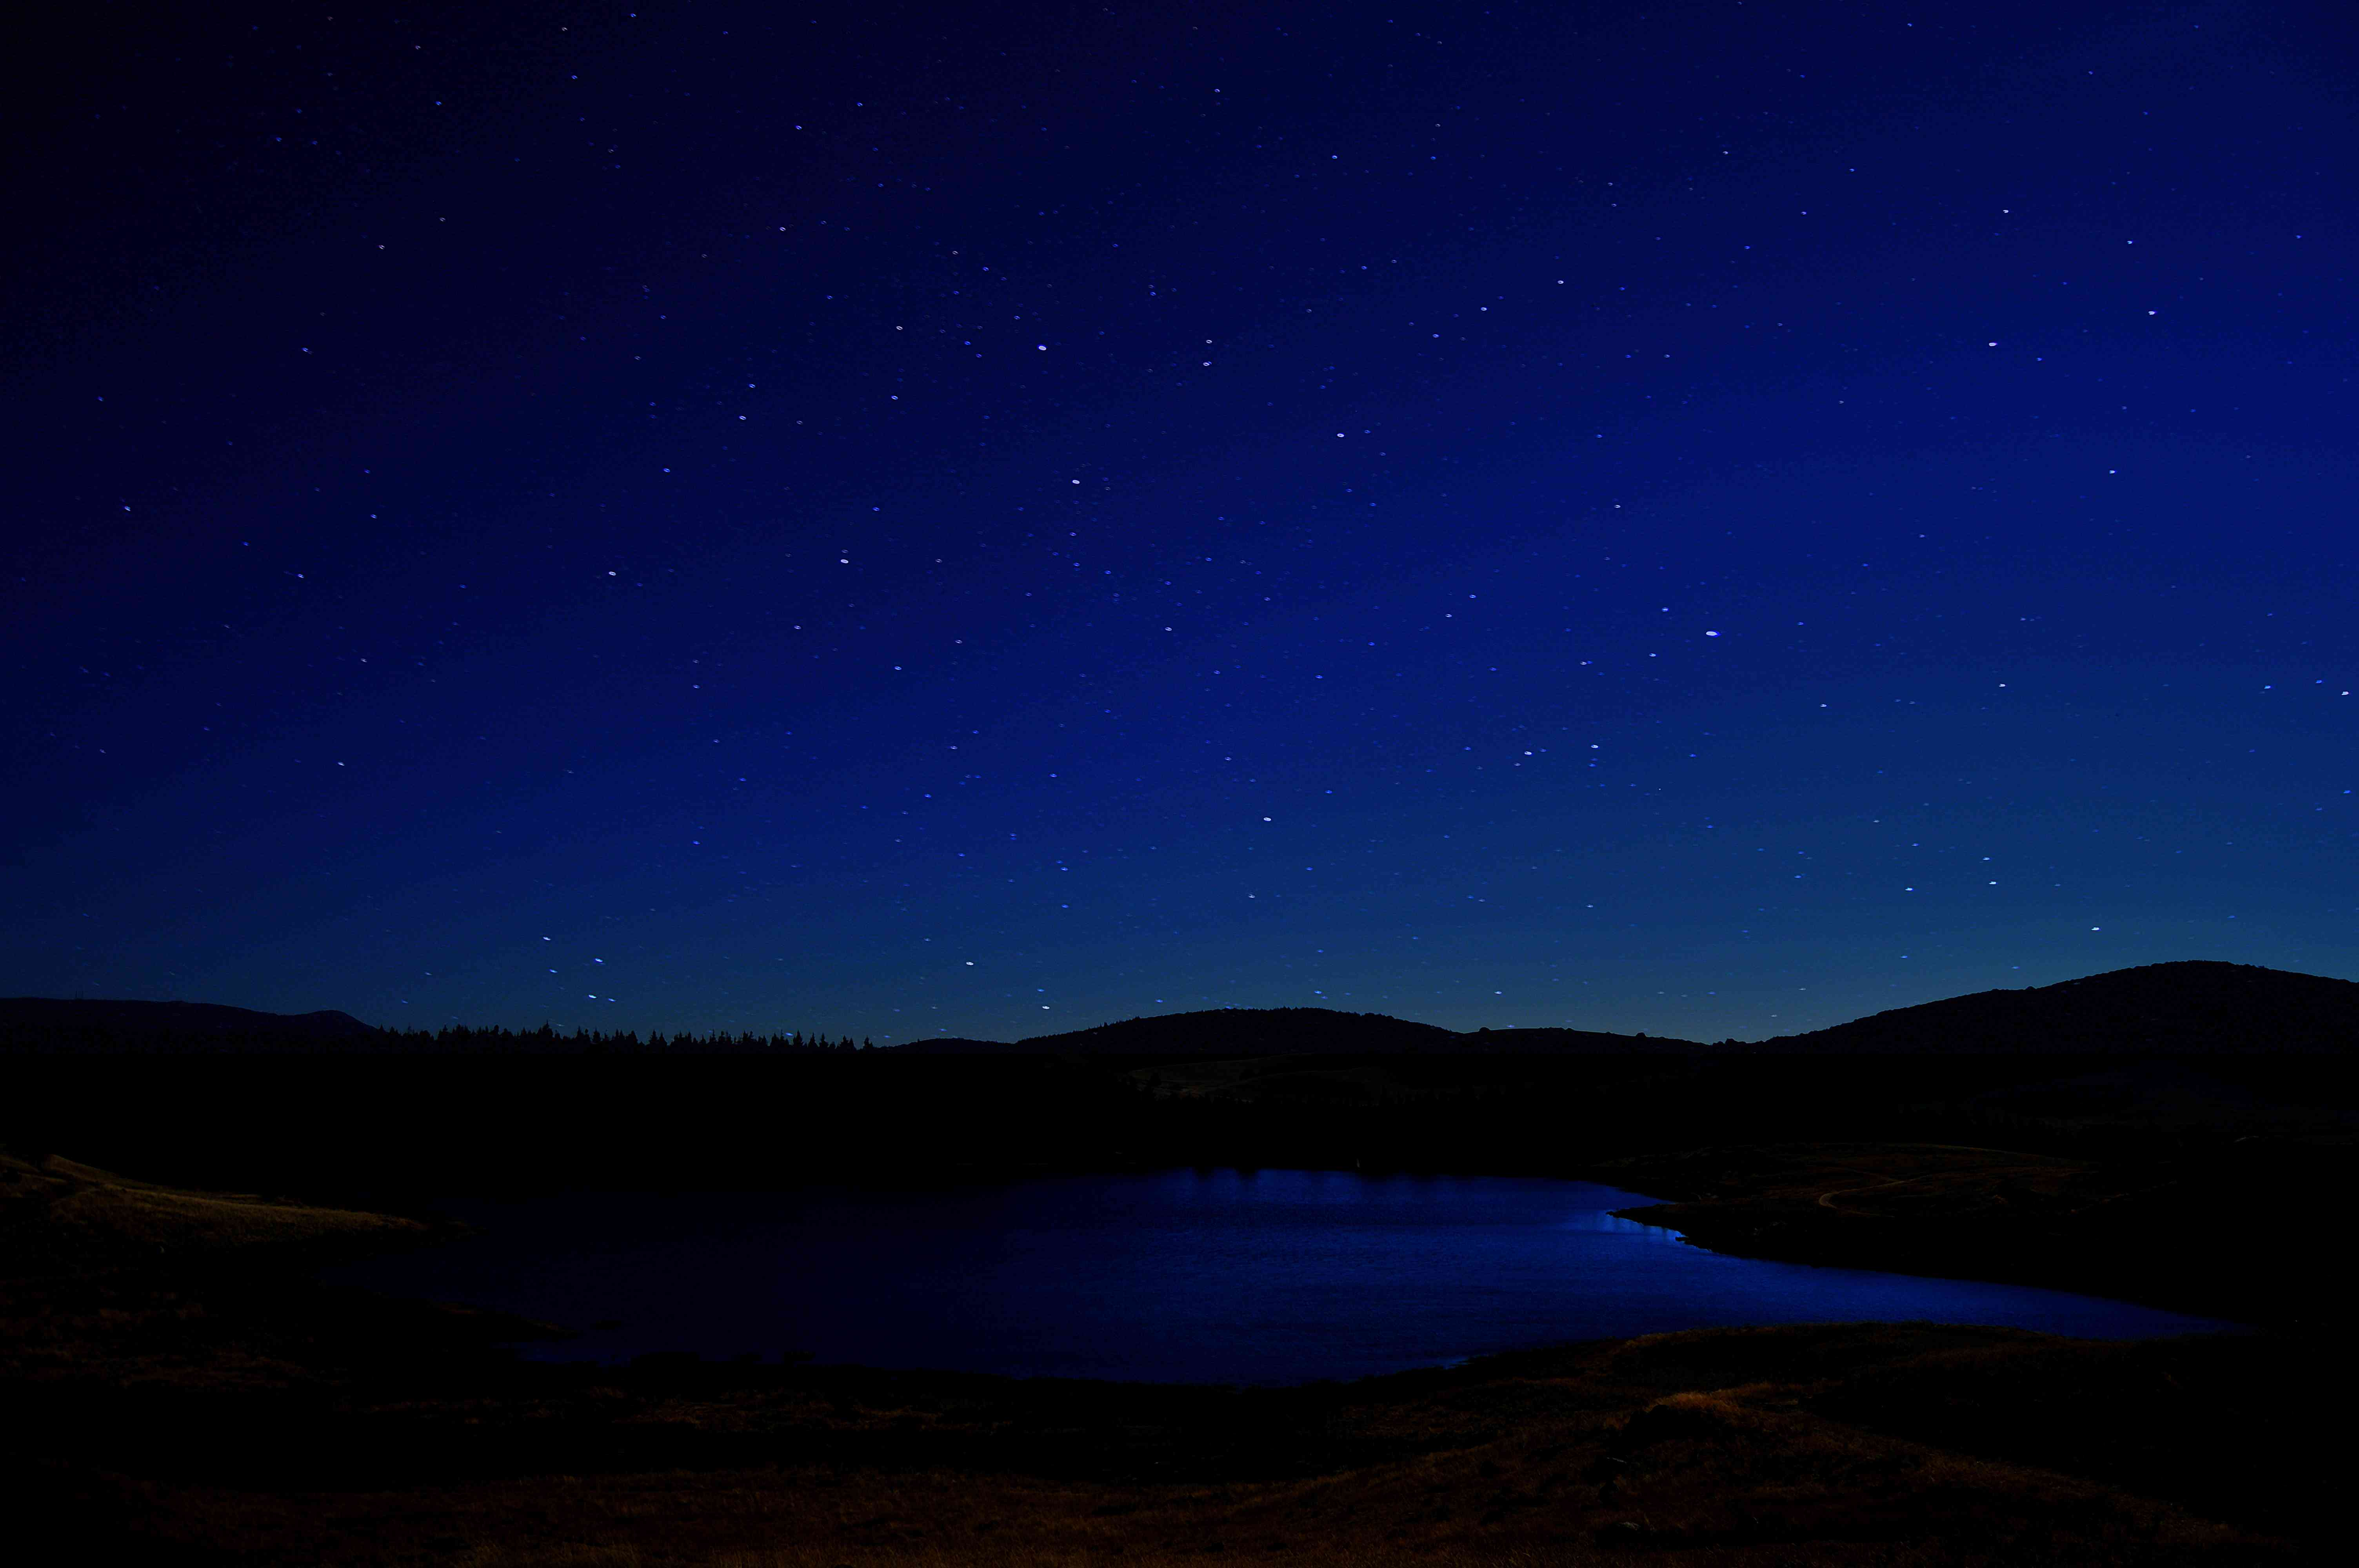 Starry night sky over mountains and lake in Cévennes